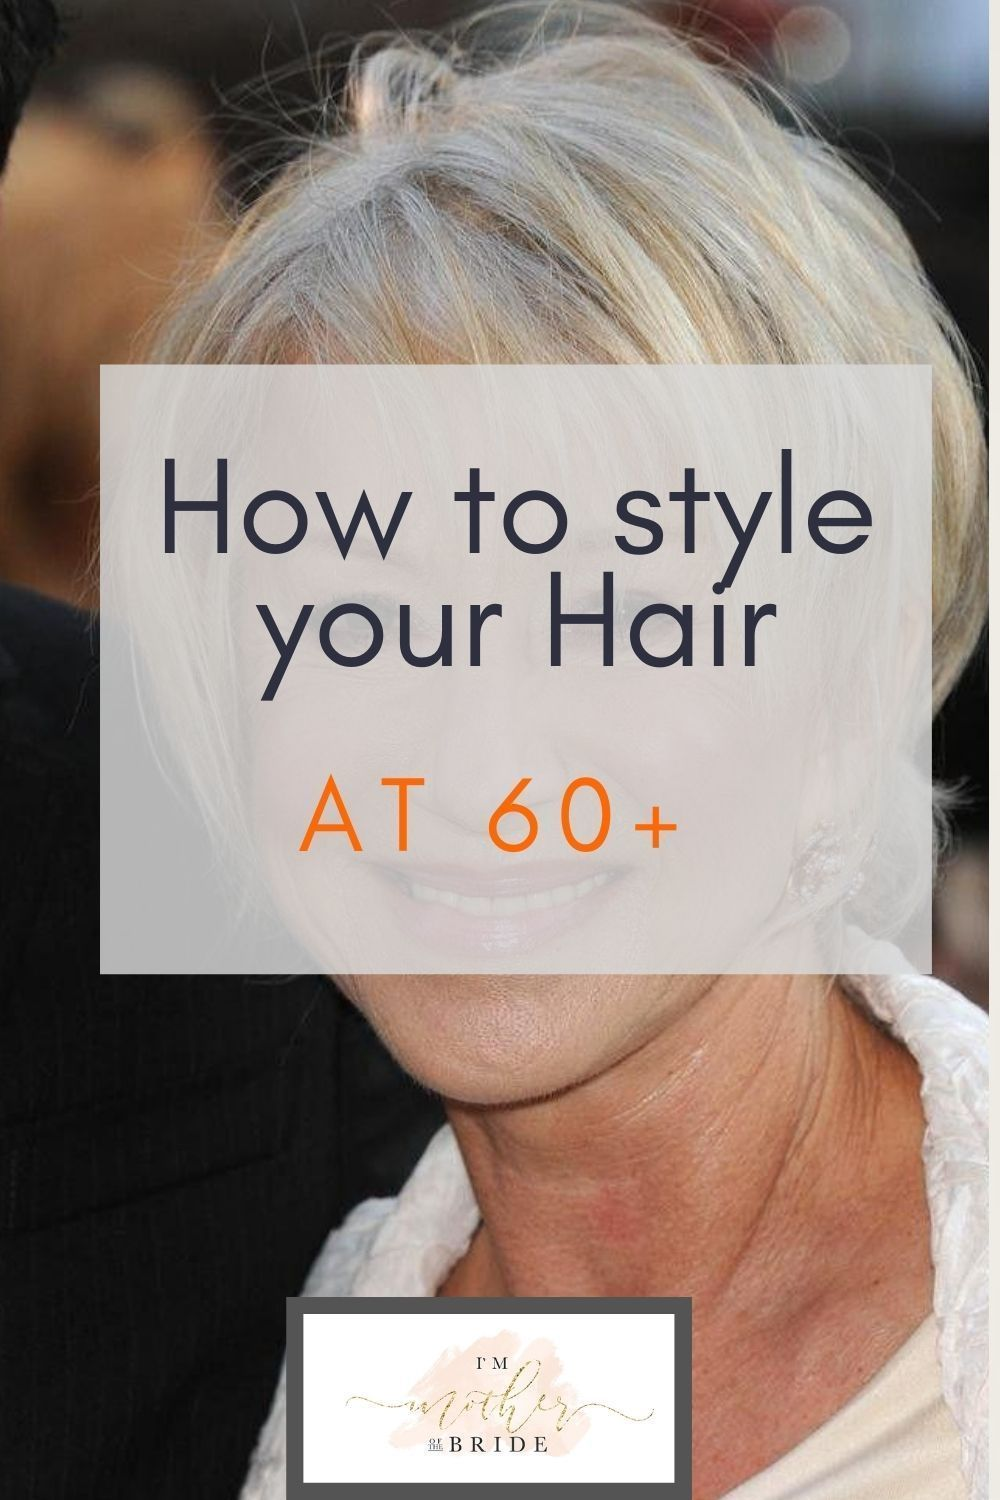 Choose an easy-care style